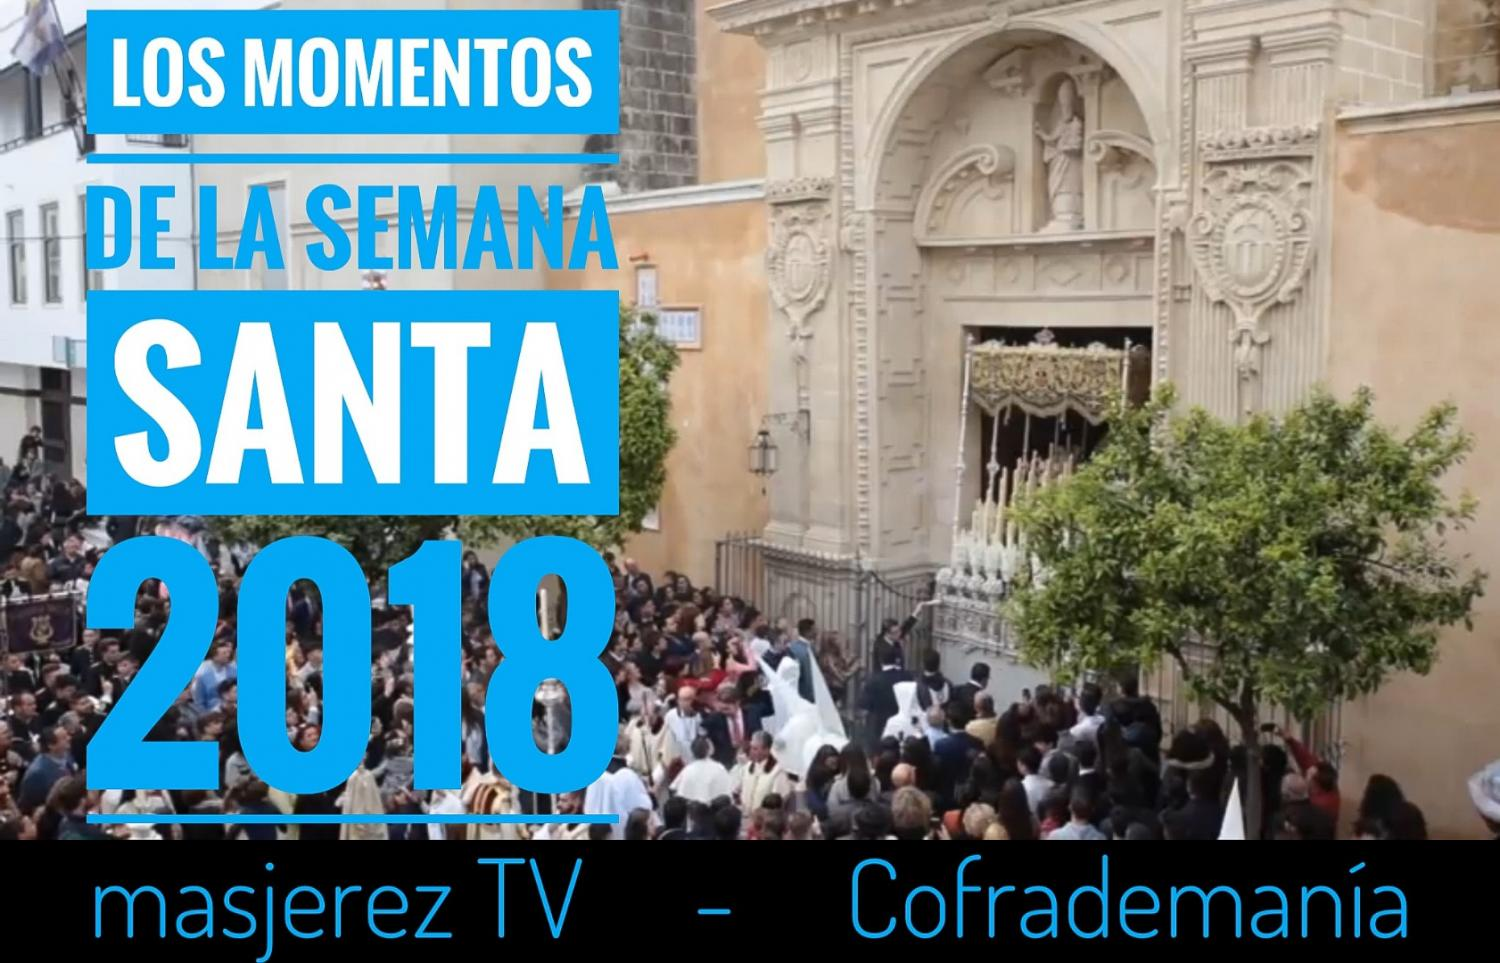 TV: Resumen en video de la Semana Santa, capítulo 1